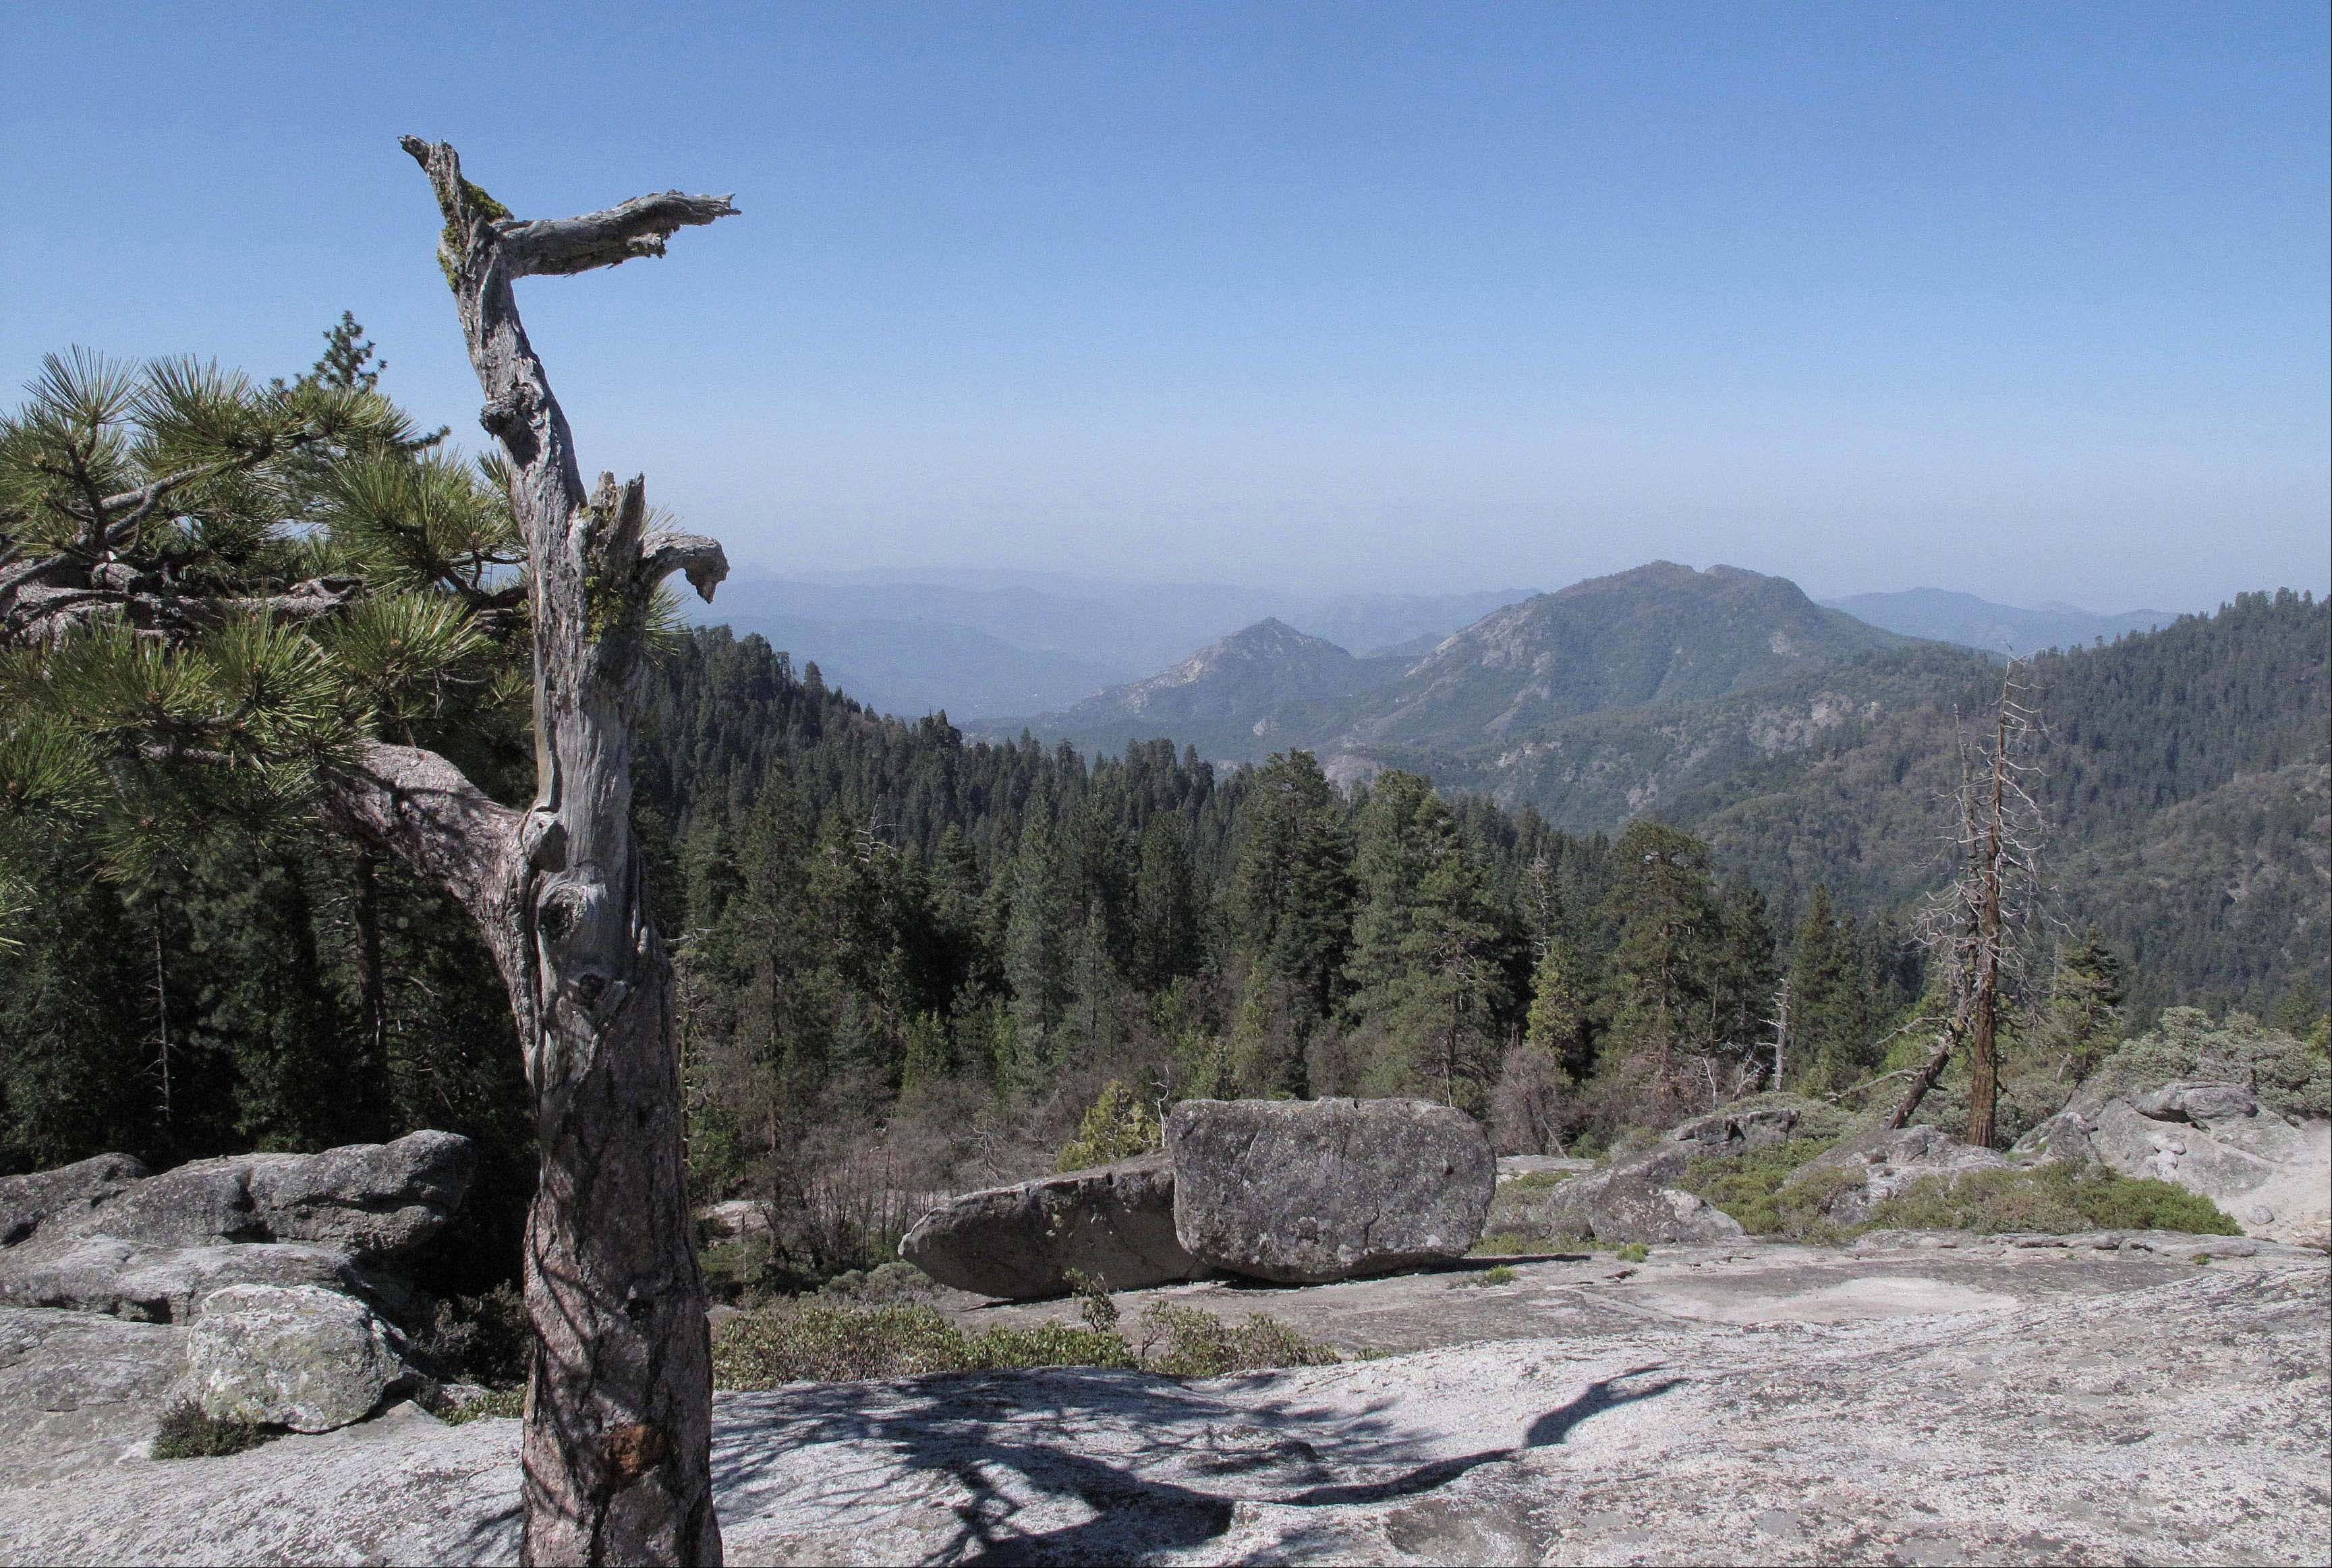 The view from Beetle Rock in Sequoia National Park, Calif., is seen. In parts of Californiaís Sierra Nevada, the incursion of trees is sucking marshy meadows dry. Glaciers are melting into mere ice fields. Wildflowers are blooming earlier. And the optimal temperature zone for Giant Sequoias is predicted to rise several thousand feet higher, leaving existing trees at risk of dying over the next 100 years.